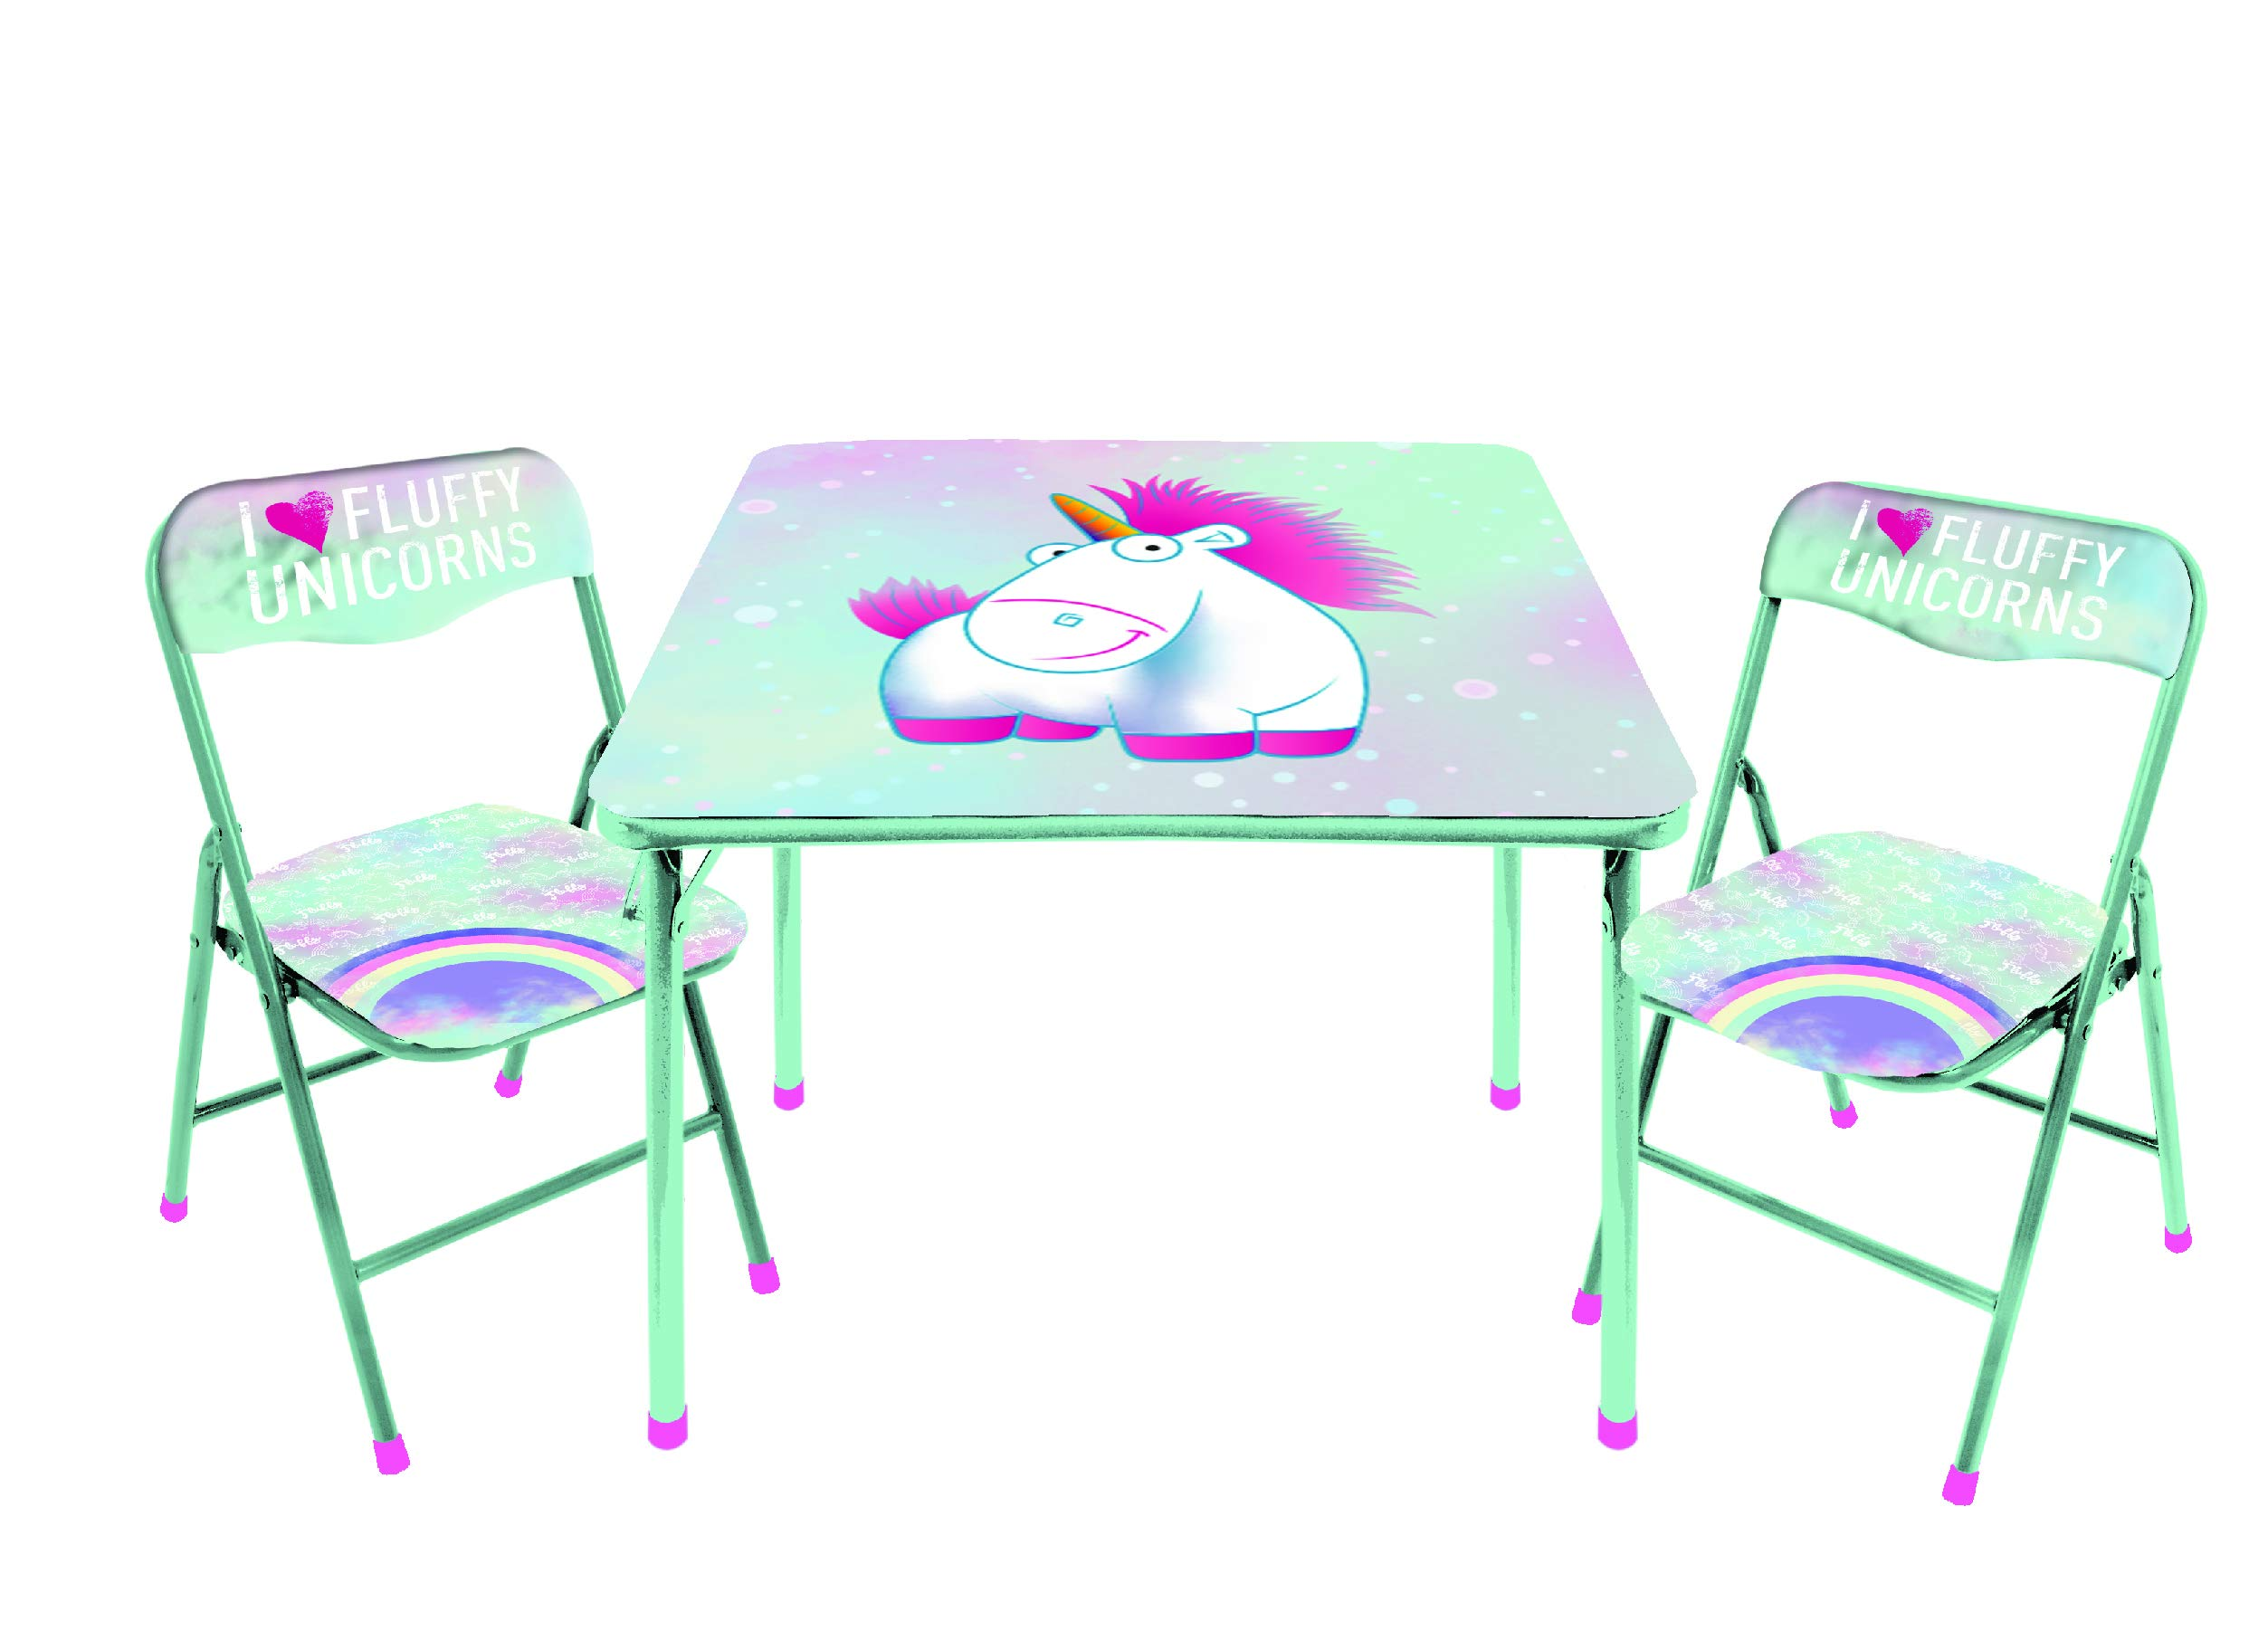 Universal Despicable Me Fluffy The Unicorn 3 PC Table & Chair Set, Mint by Universal